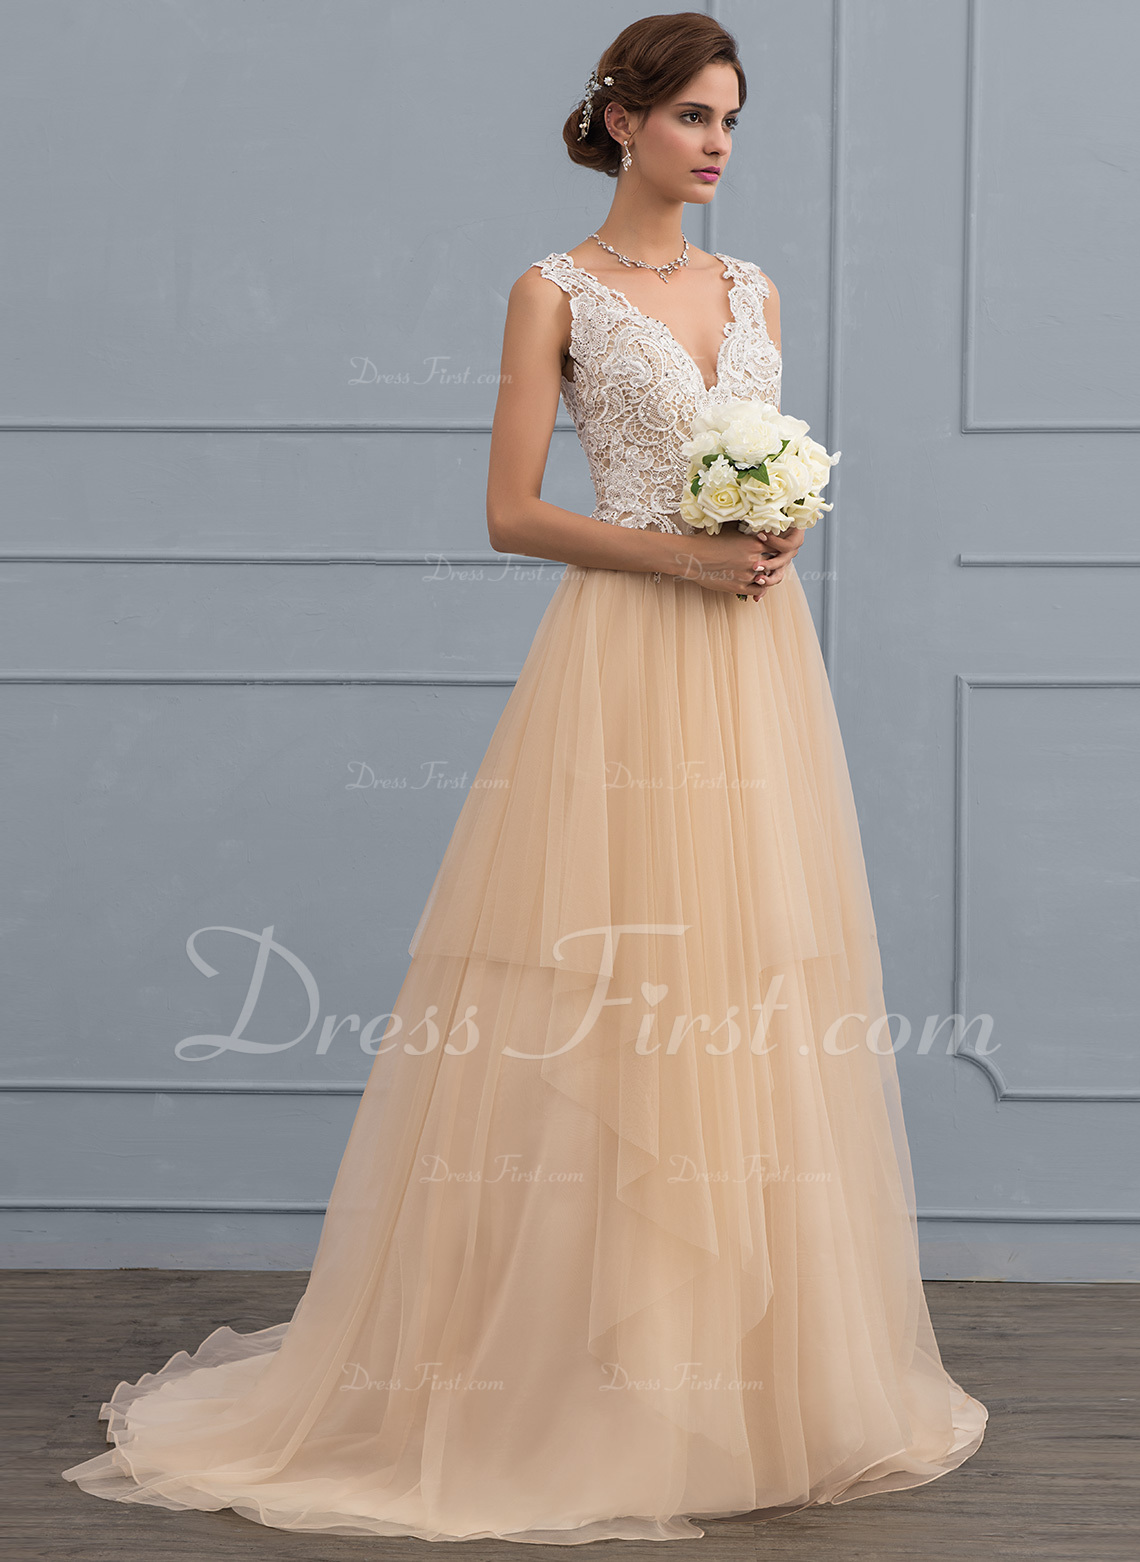 49f6fb2bac3d57 ... Lace Sequins Loading Zoom · Ball Gown V Neck Sweep Train Tulle Wedding  Dress With Beading Sequins 107847 ...